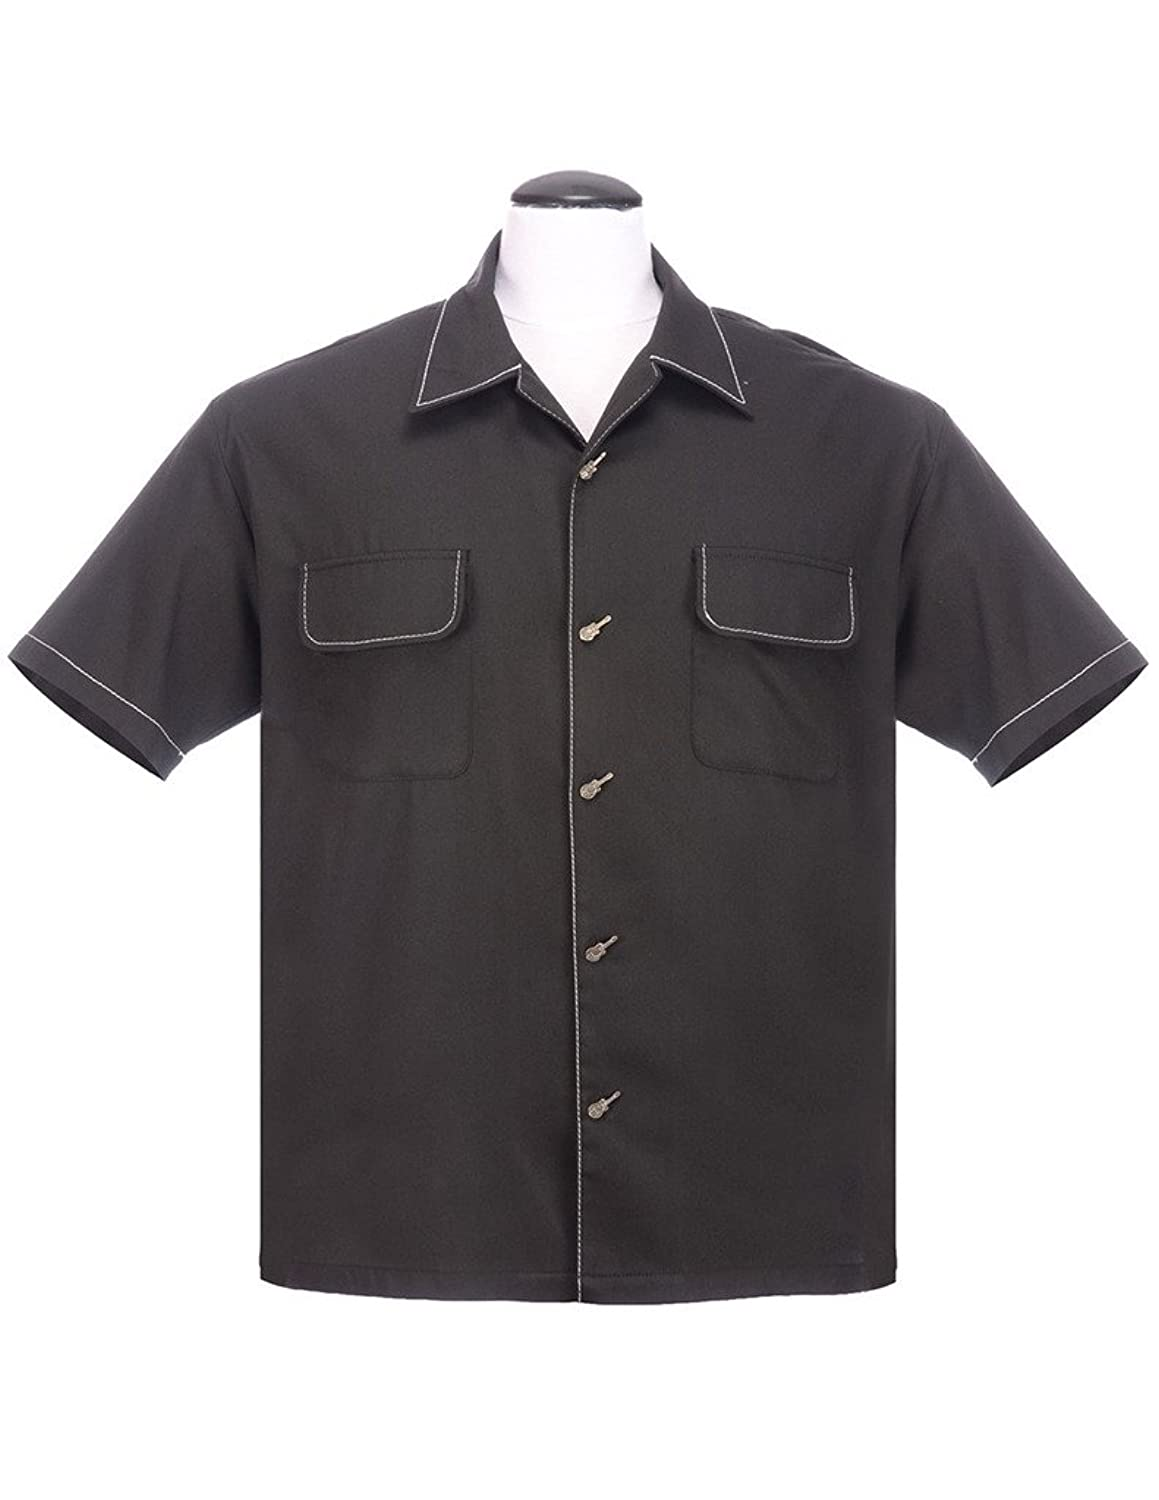 Mens Vintage Shirts – Casual, Dress, T-shirts, Polos Music Button Up Lounge Shirt with Guitar Buttons $58.99 AT vintagedancer.com